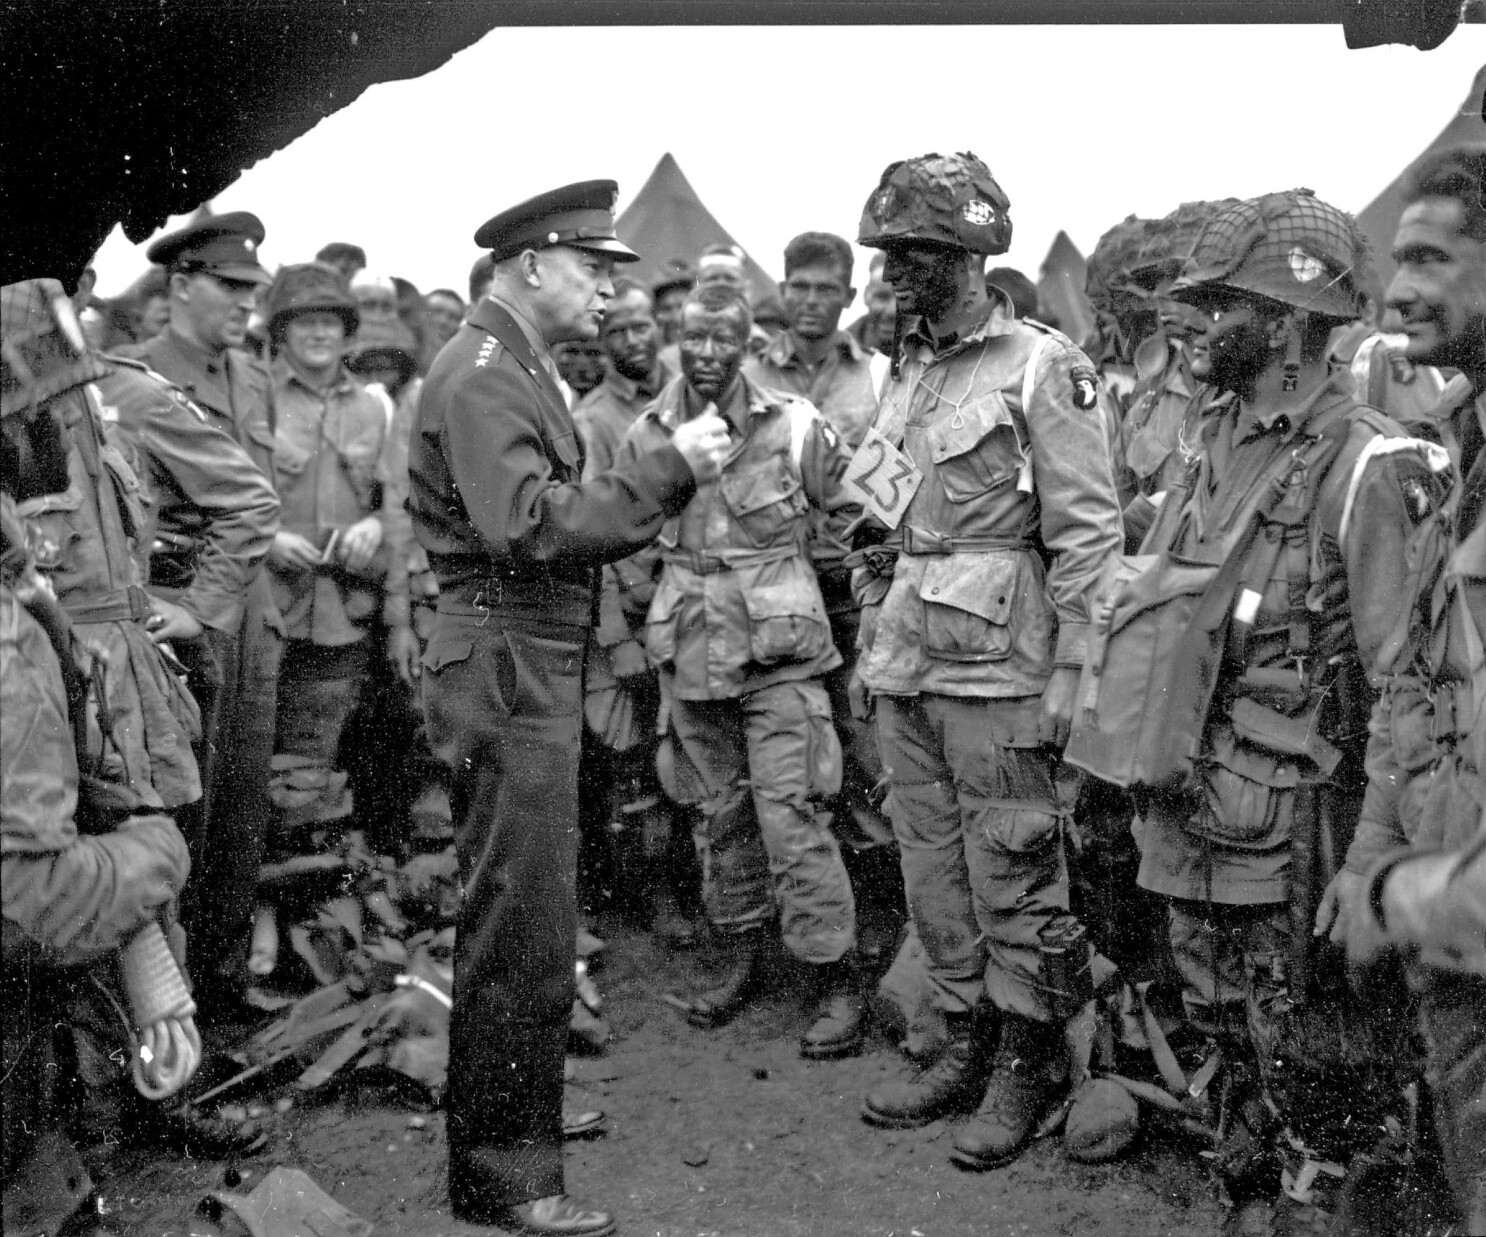 70th anniversary of D-day: What does the 'D' stand for